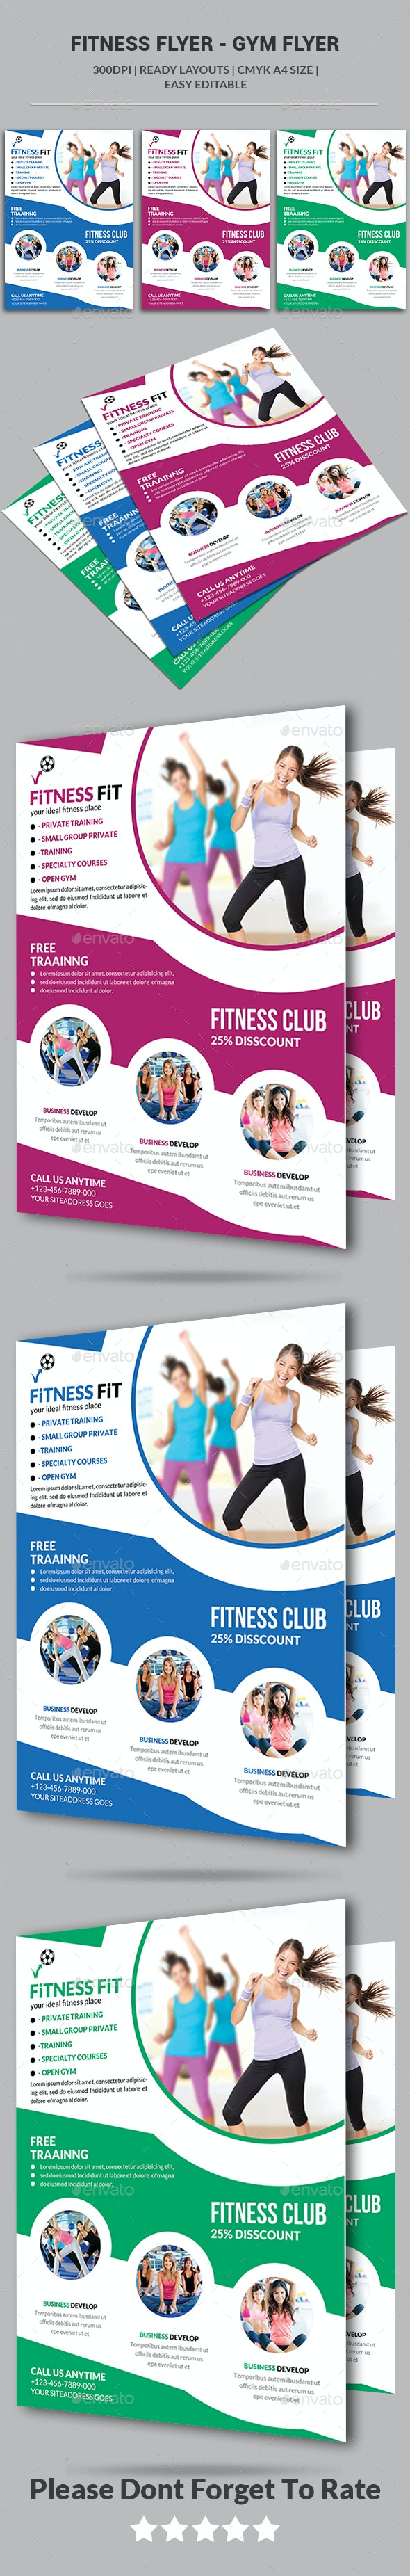 Fitness Flyer - Gym Flyer - Corporate Flyers